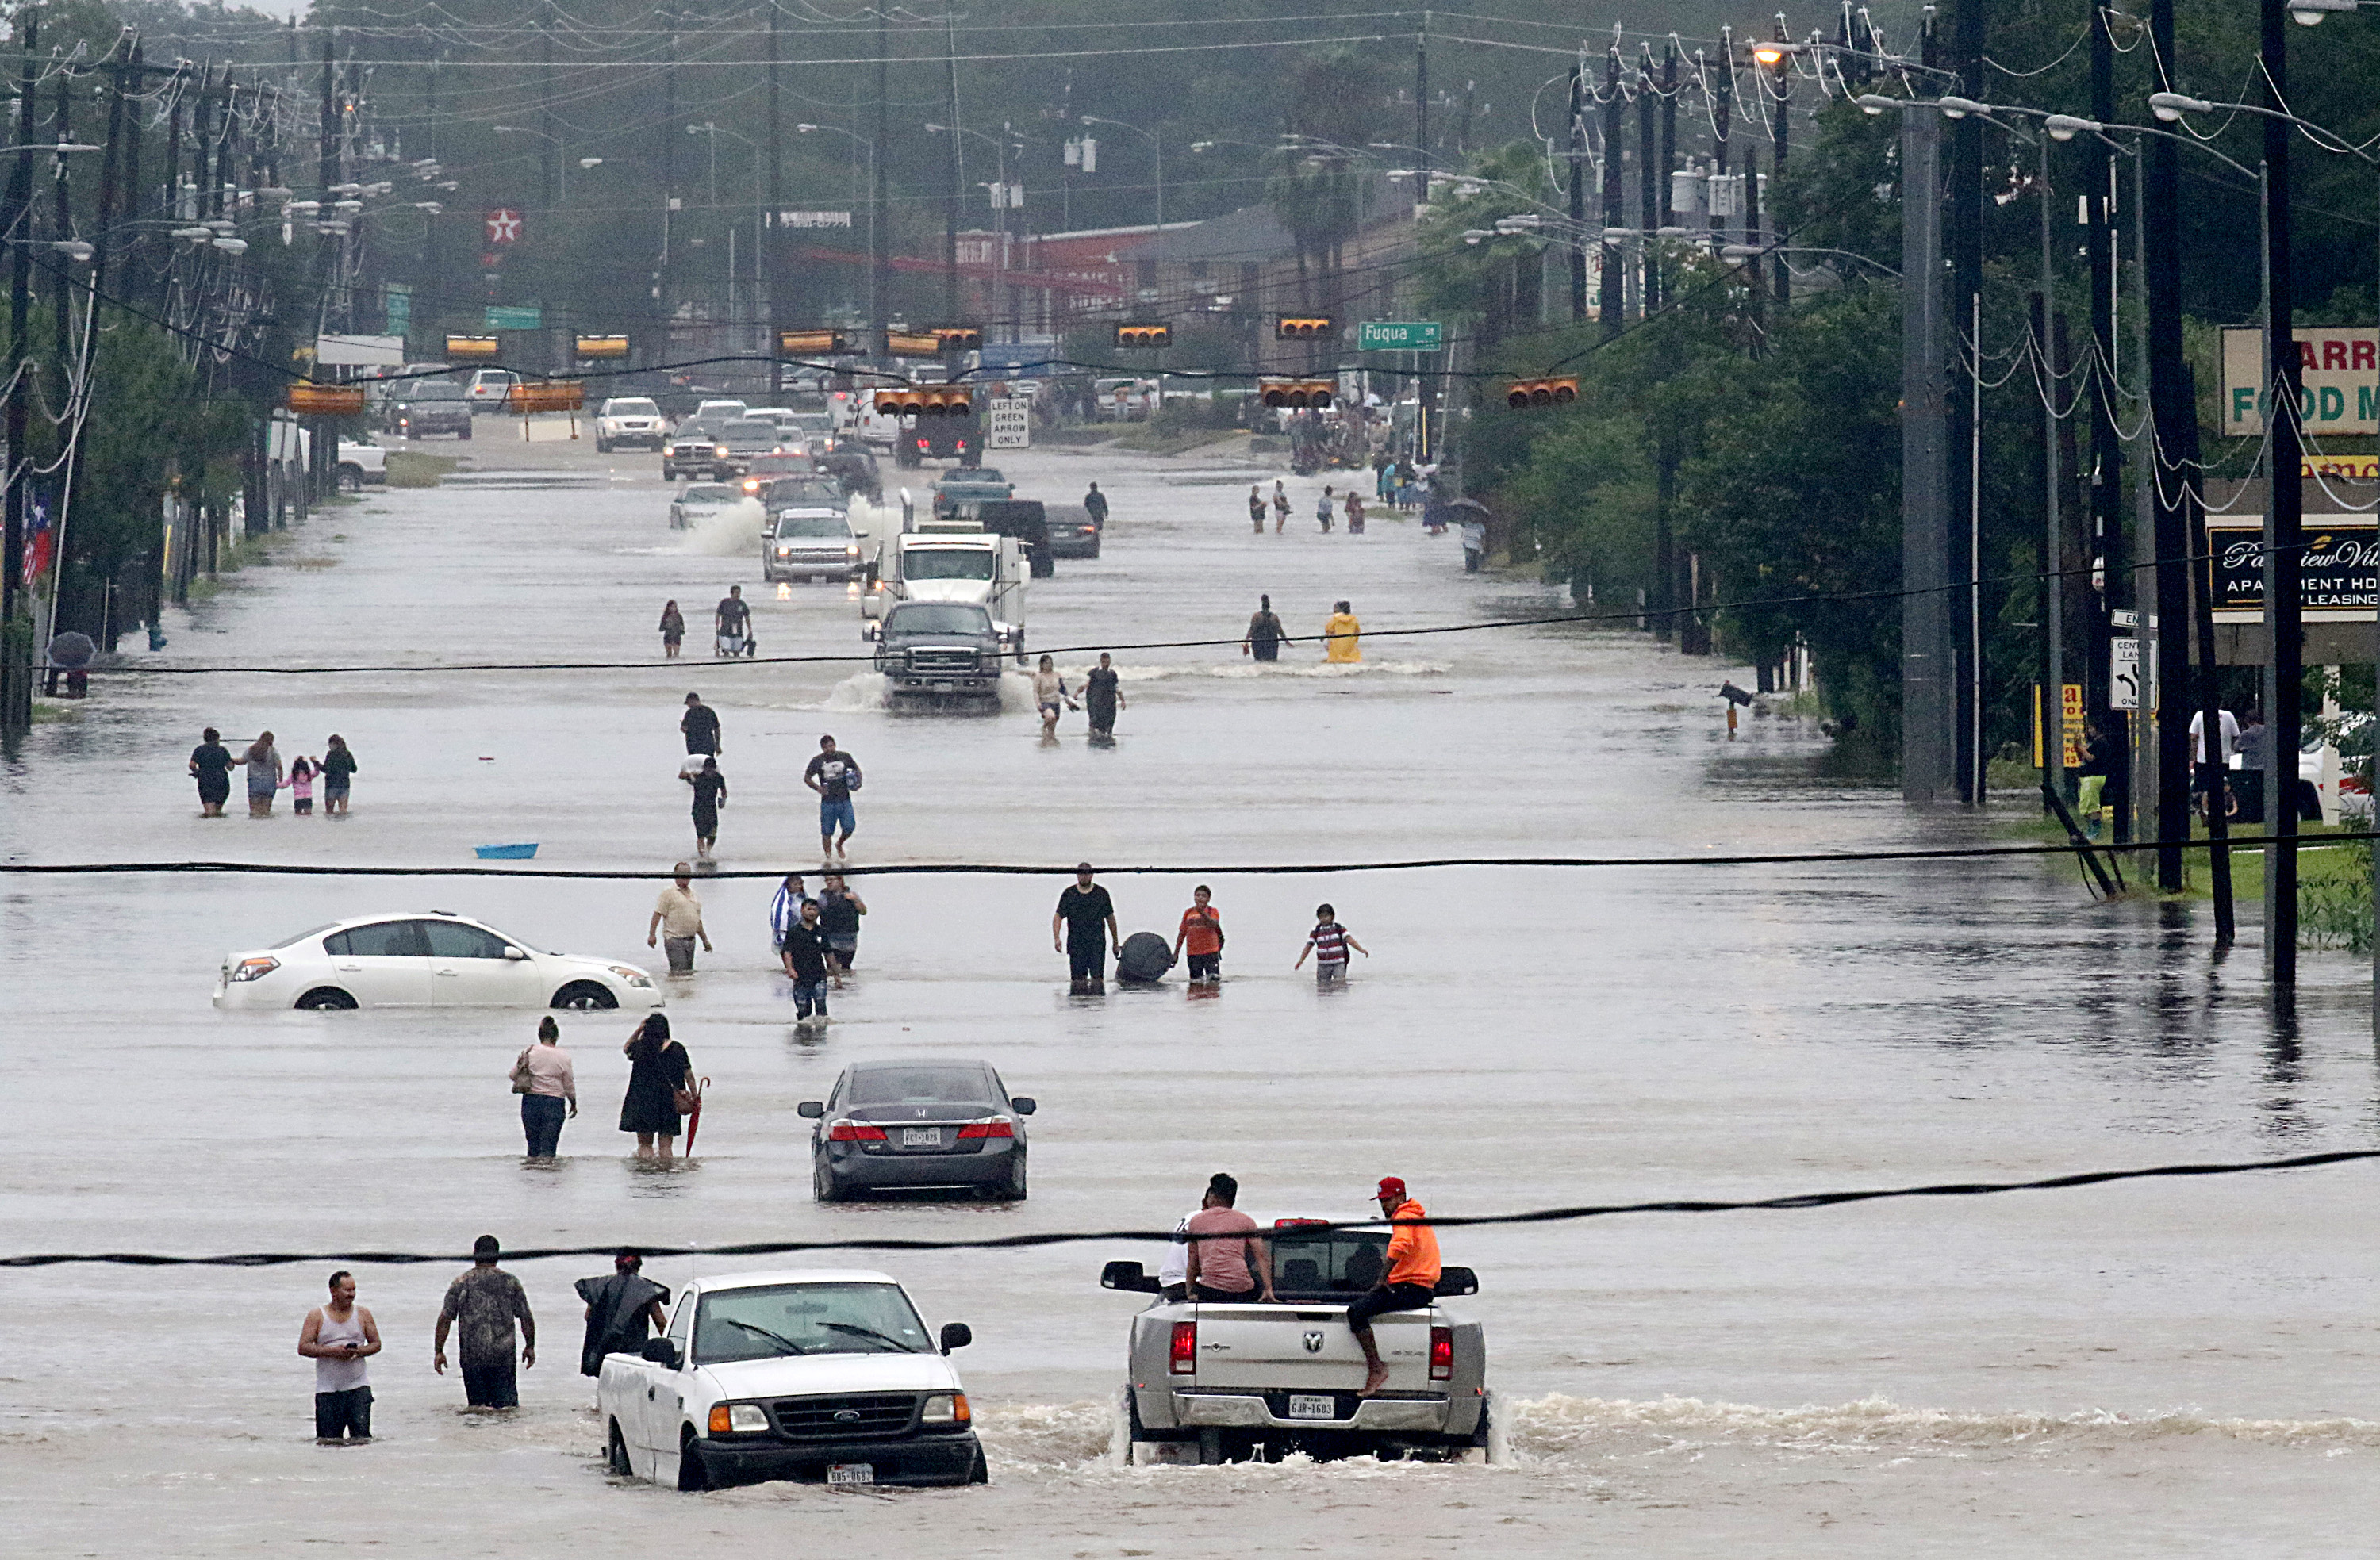 How You Can Help Victims of Hurricane Harvey